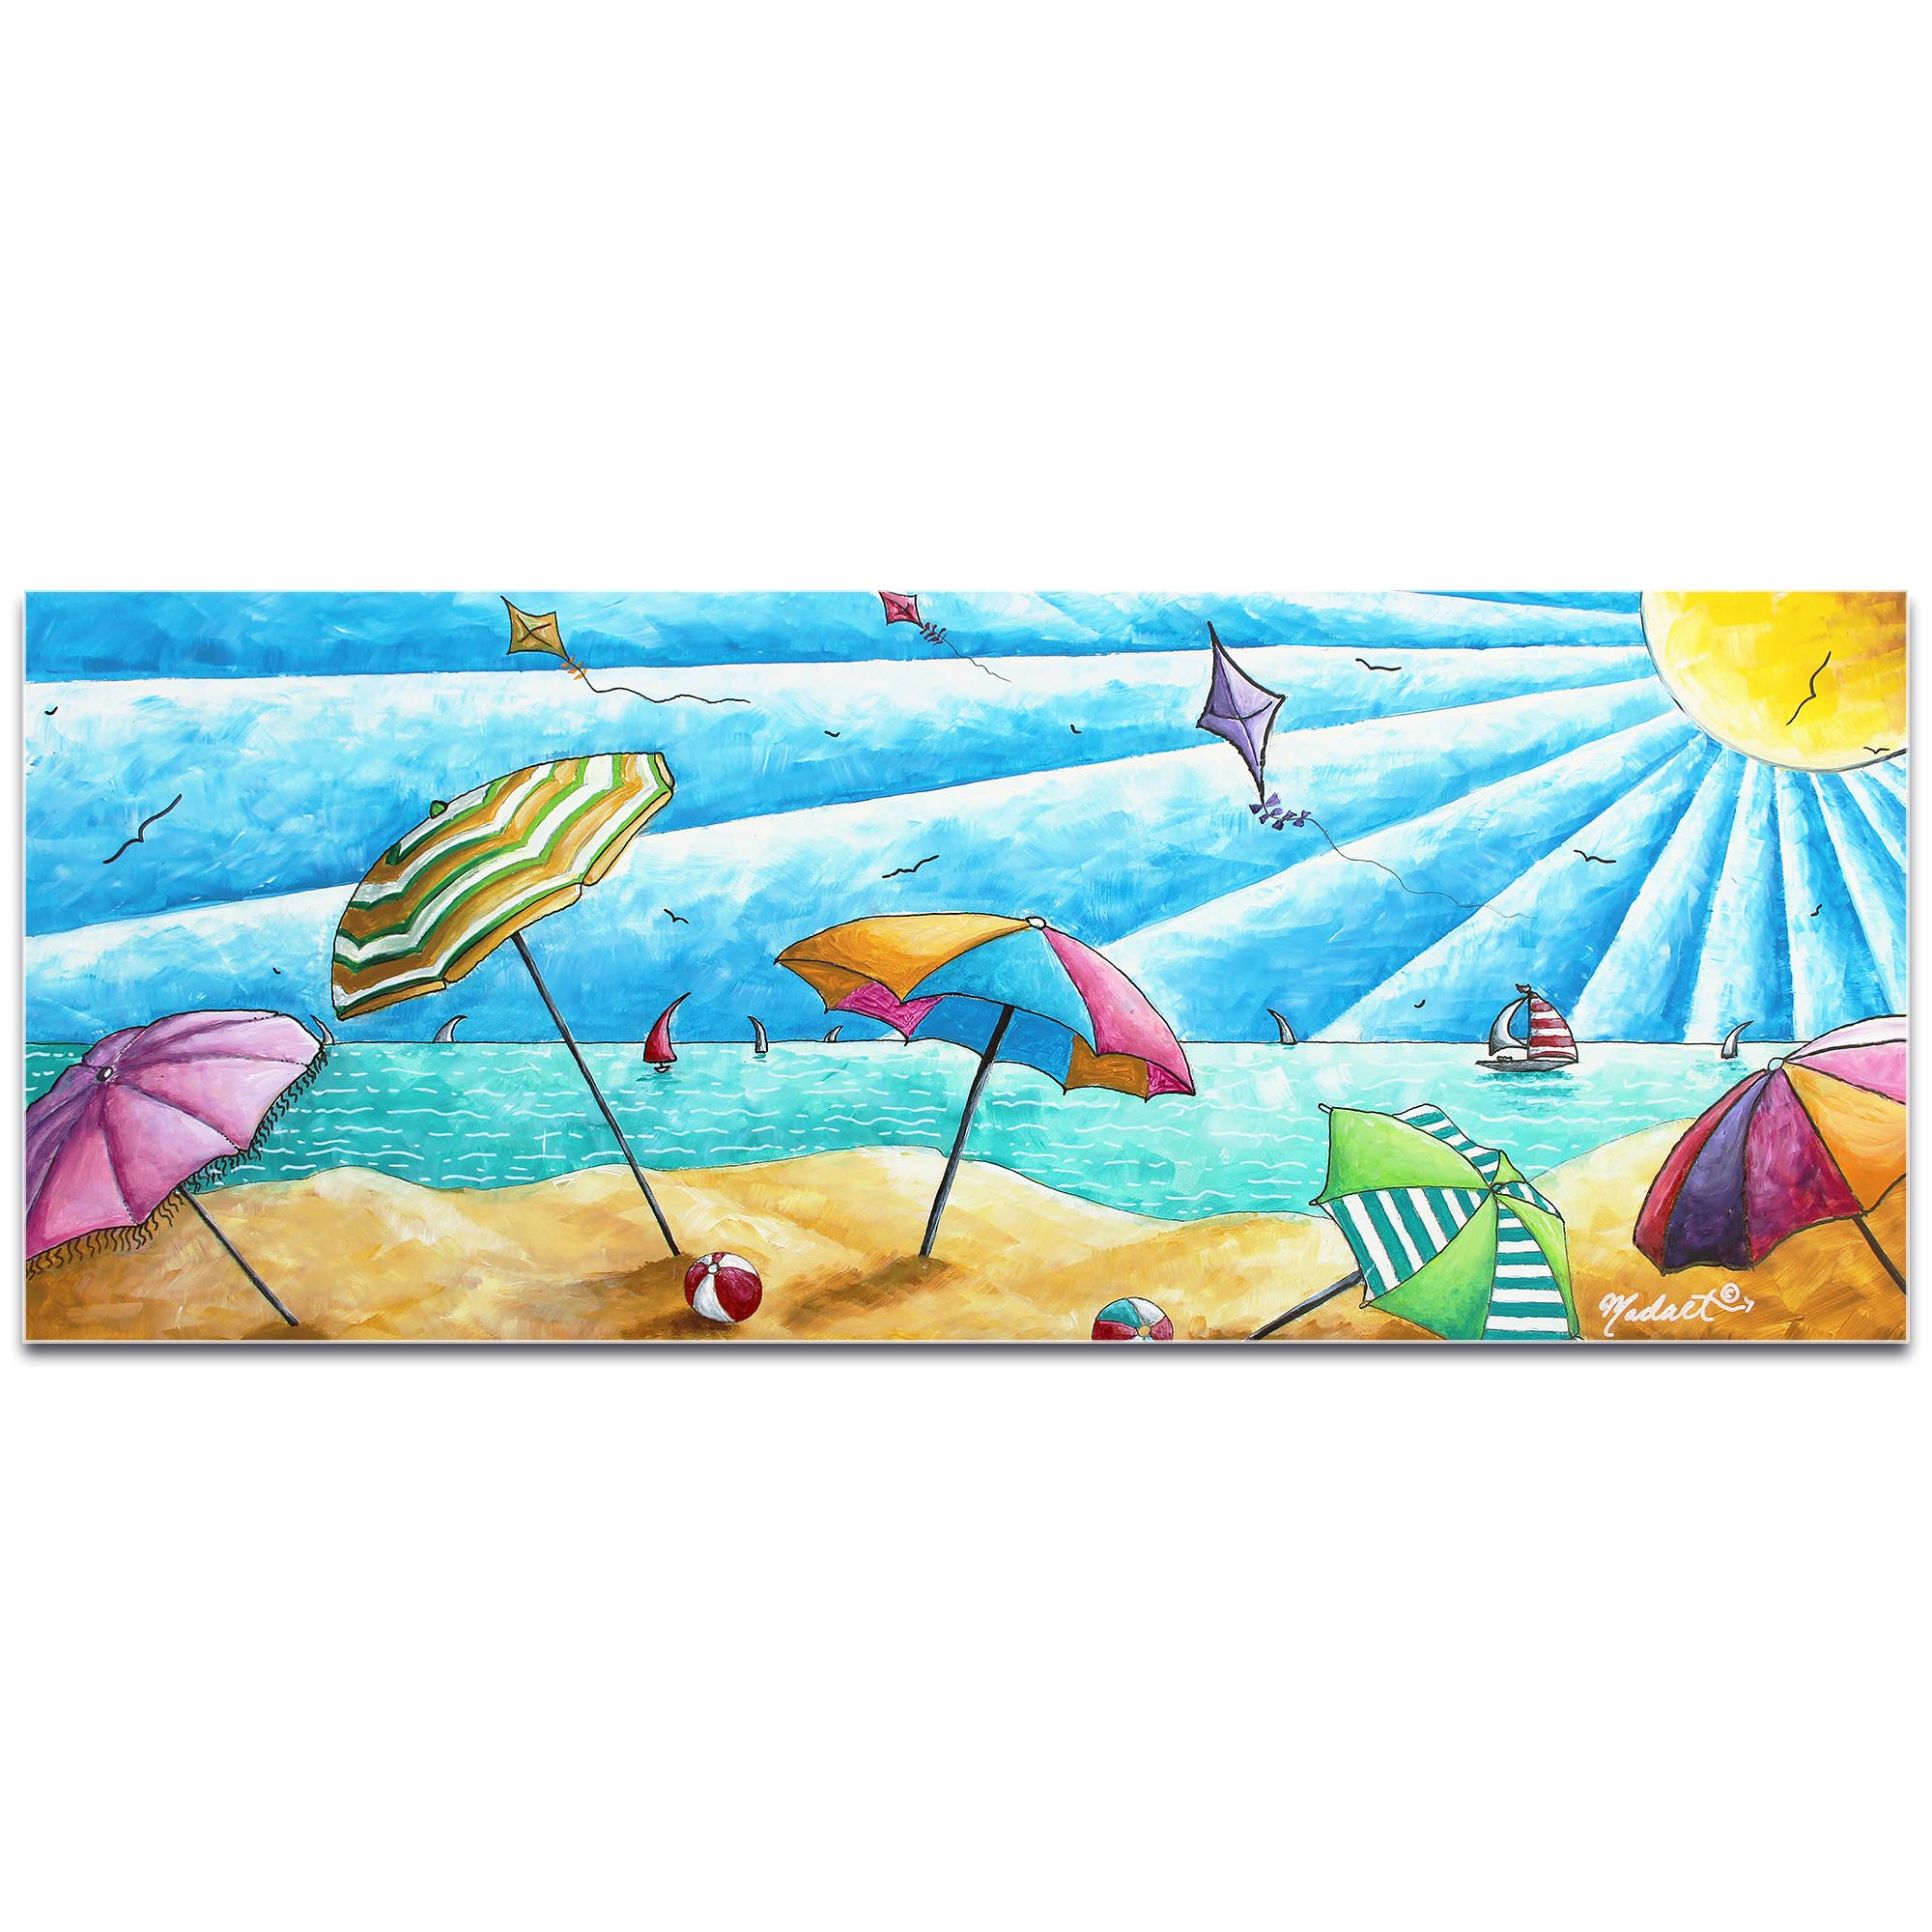 Beach Painting 'Beach Life v2' - Tropical Wall Art on Metal or Acrylic - Image 2